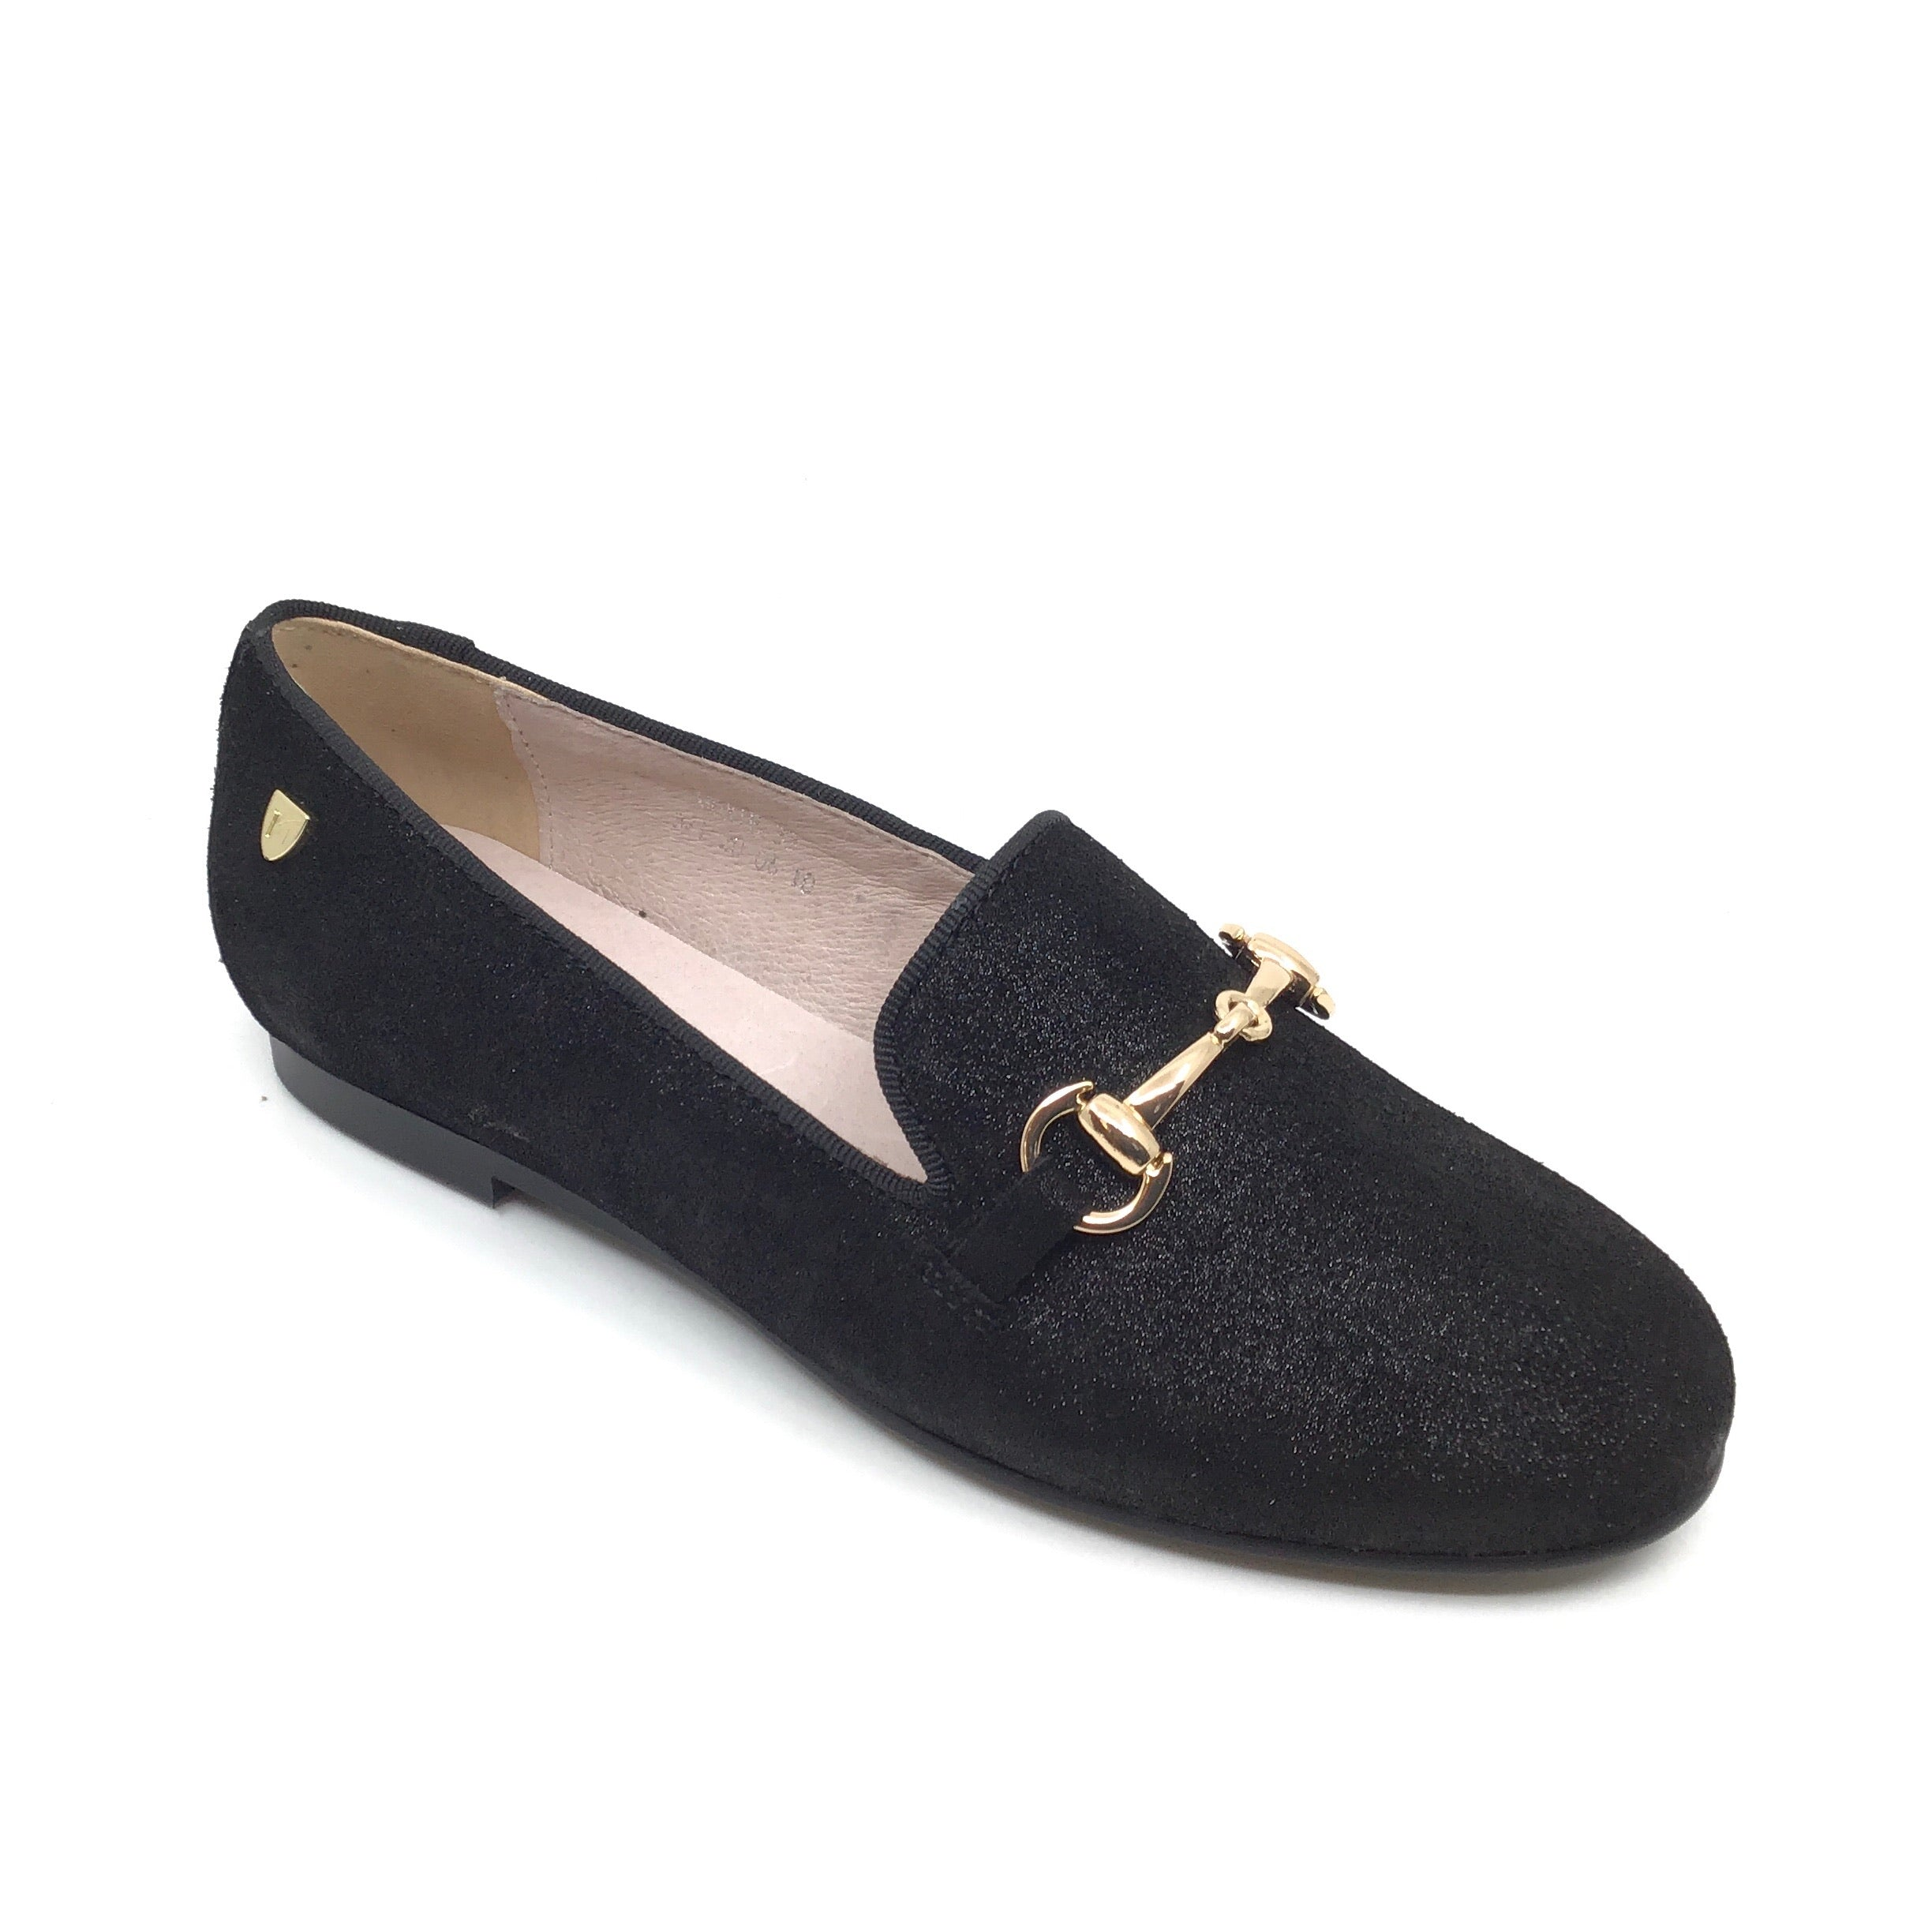 Venettini Black Sparkle Slip On with Chain